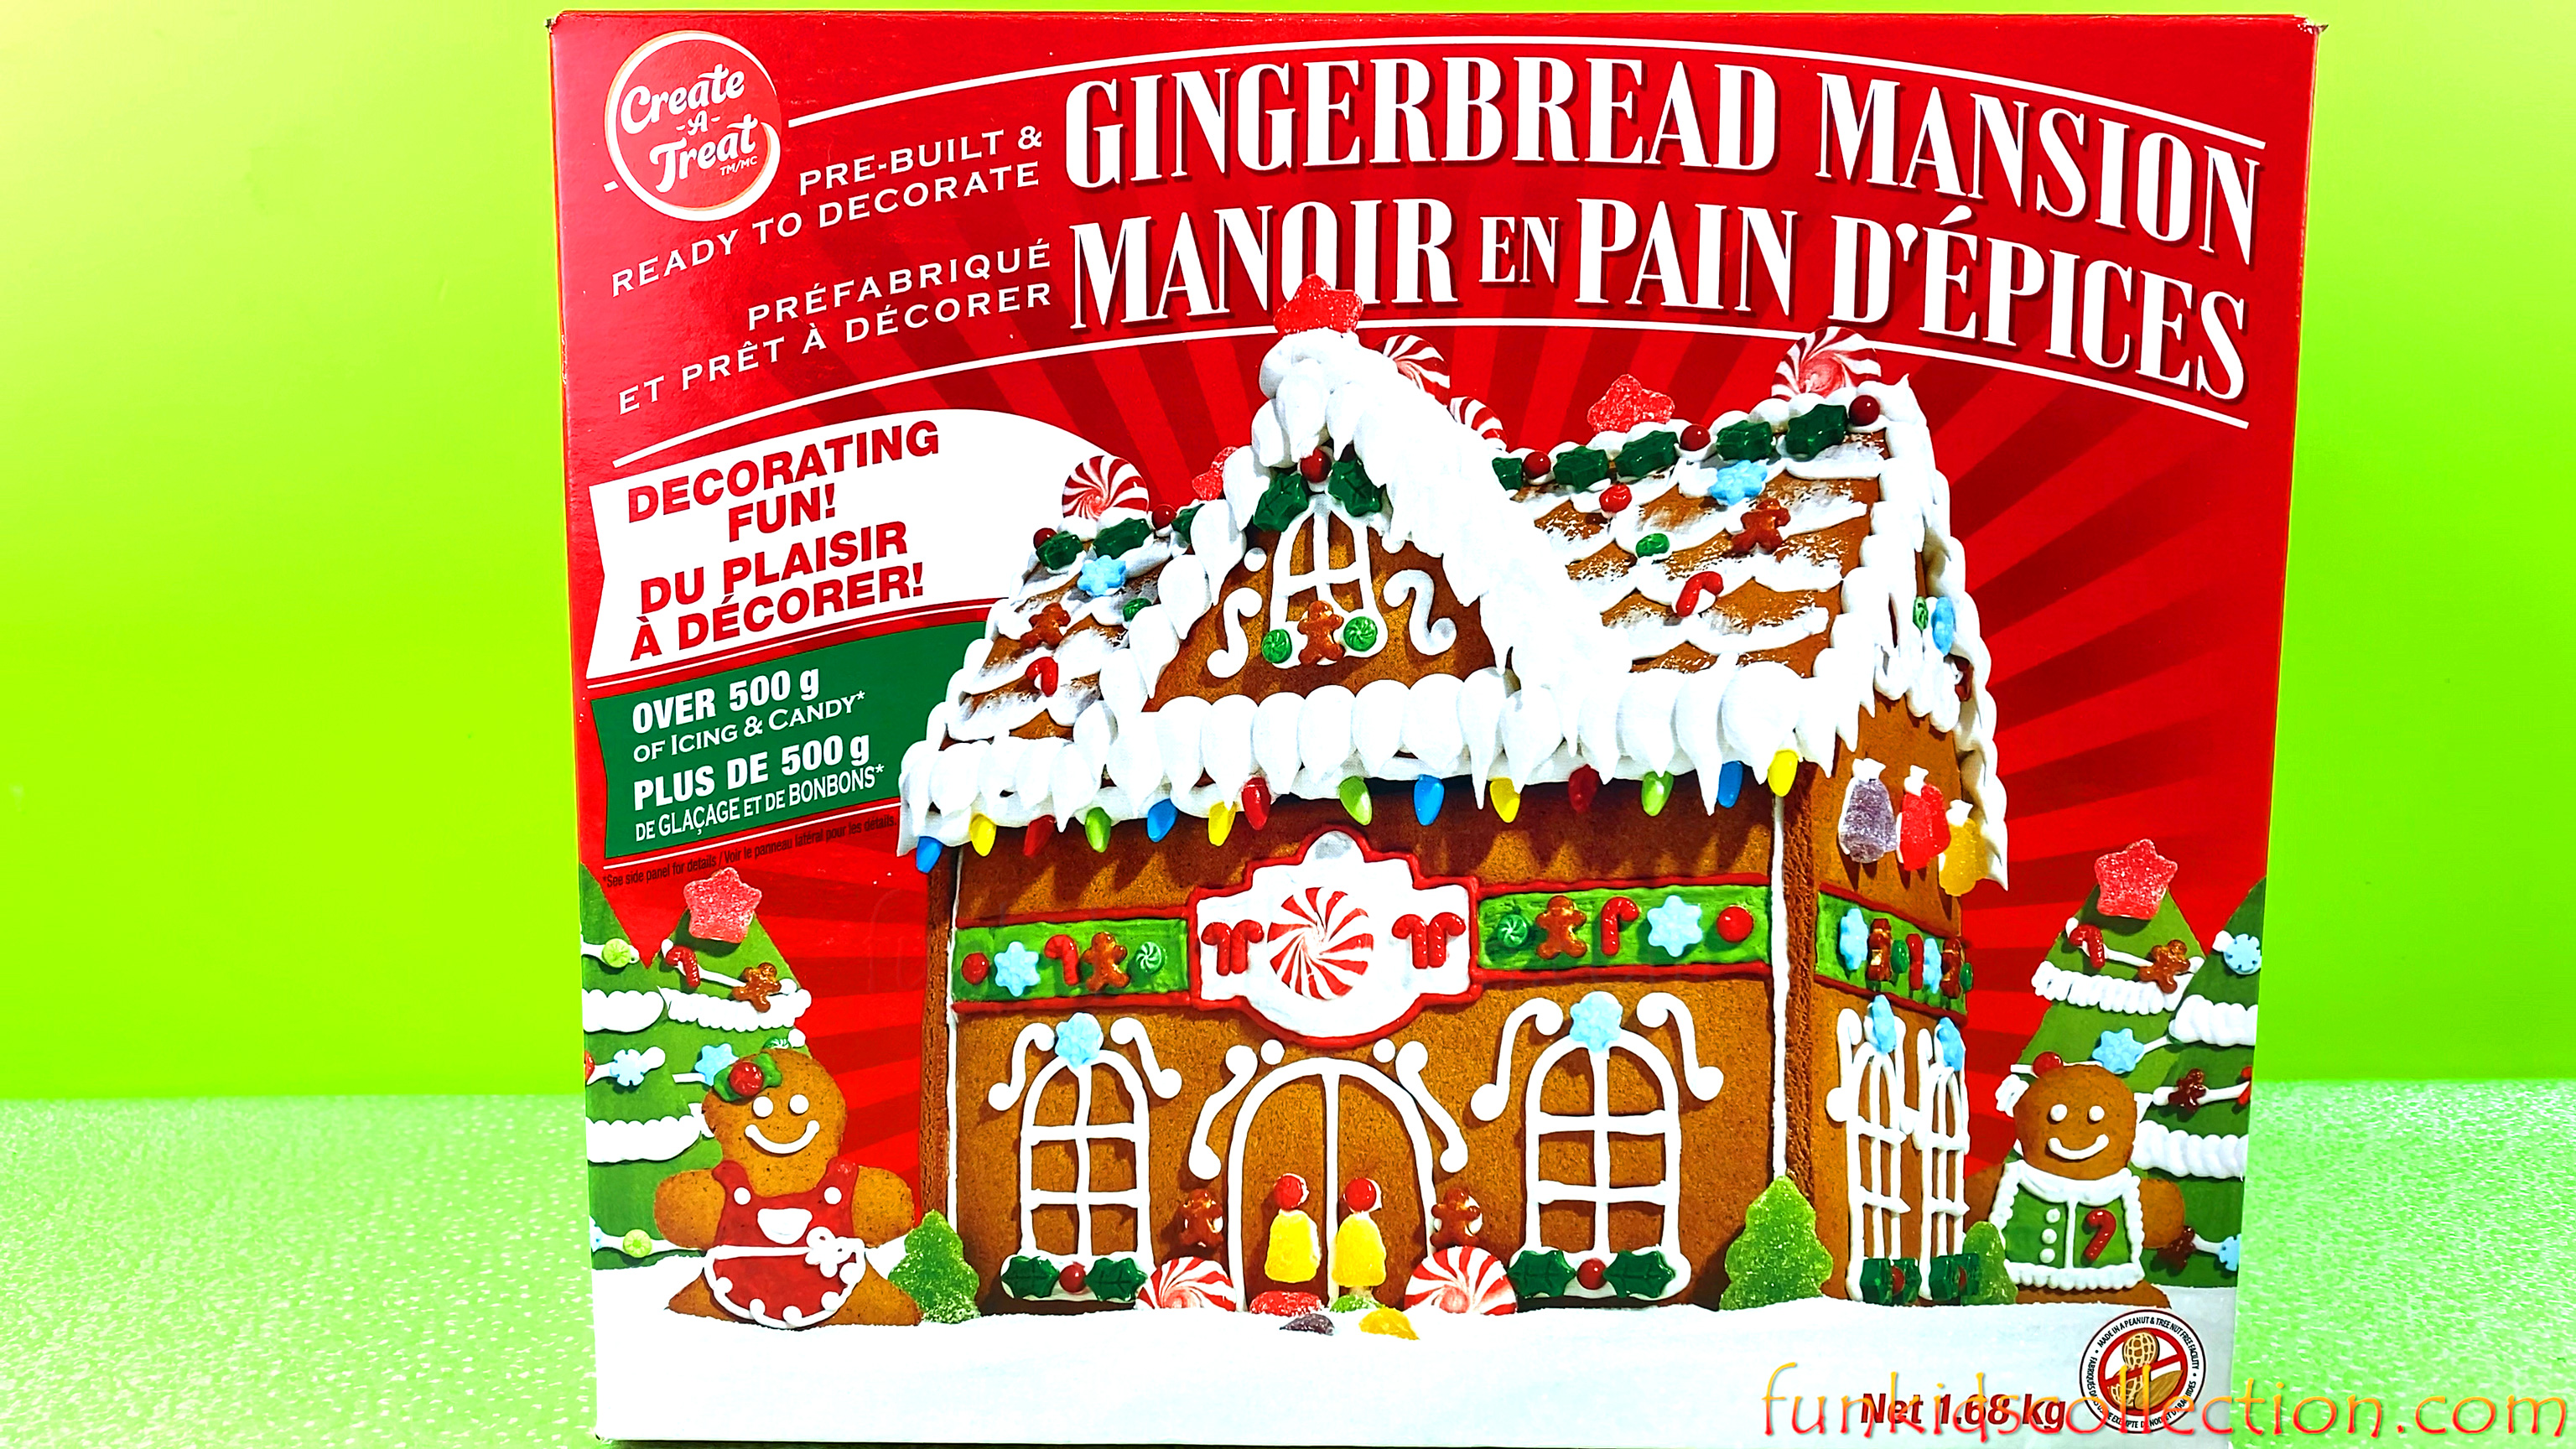 Ginger Bread Mansion Unboxing | DIY Gingerbread House Decorating | EBD Toys